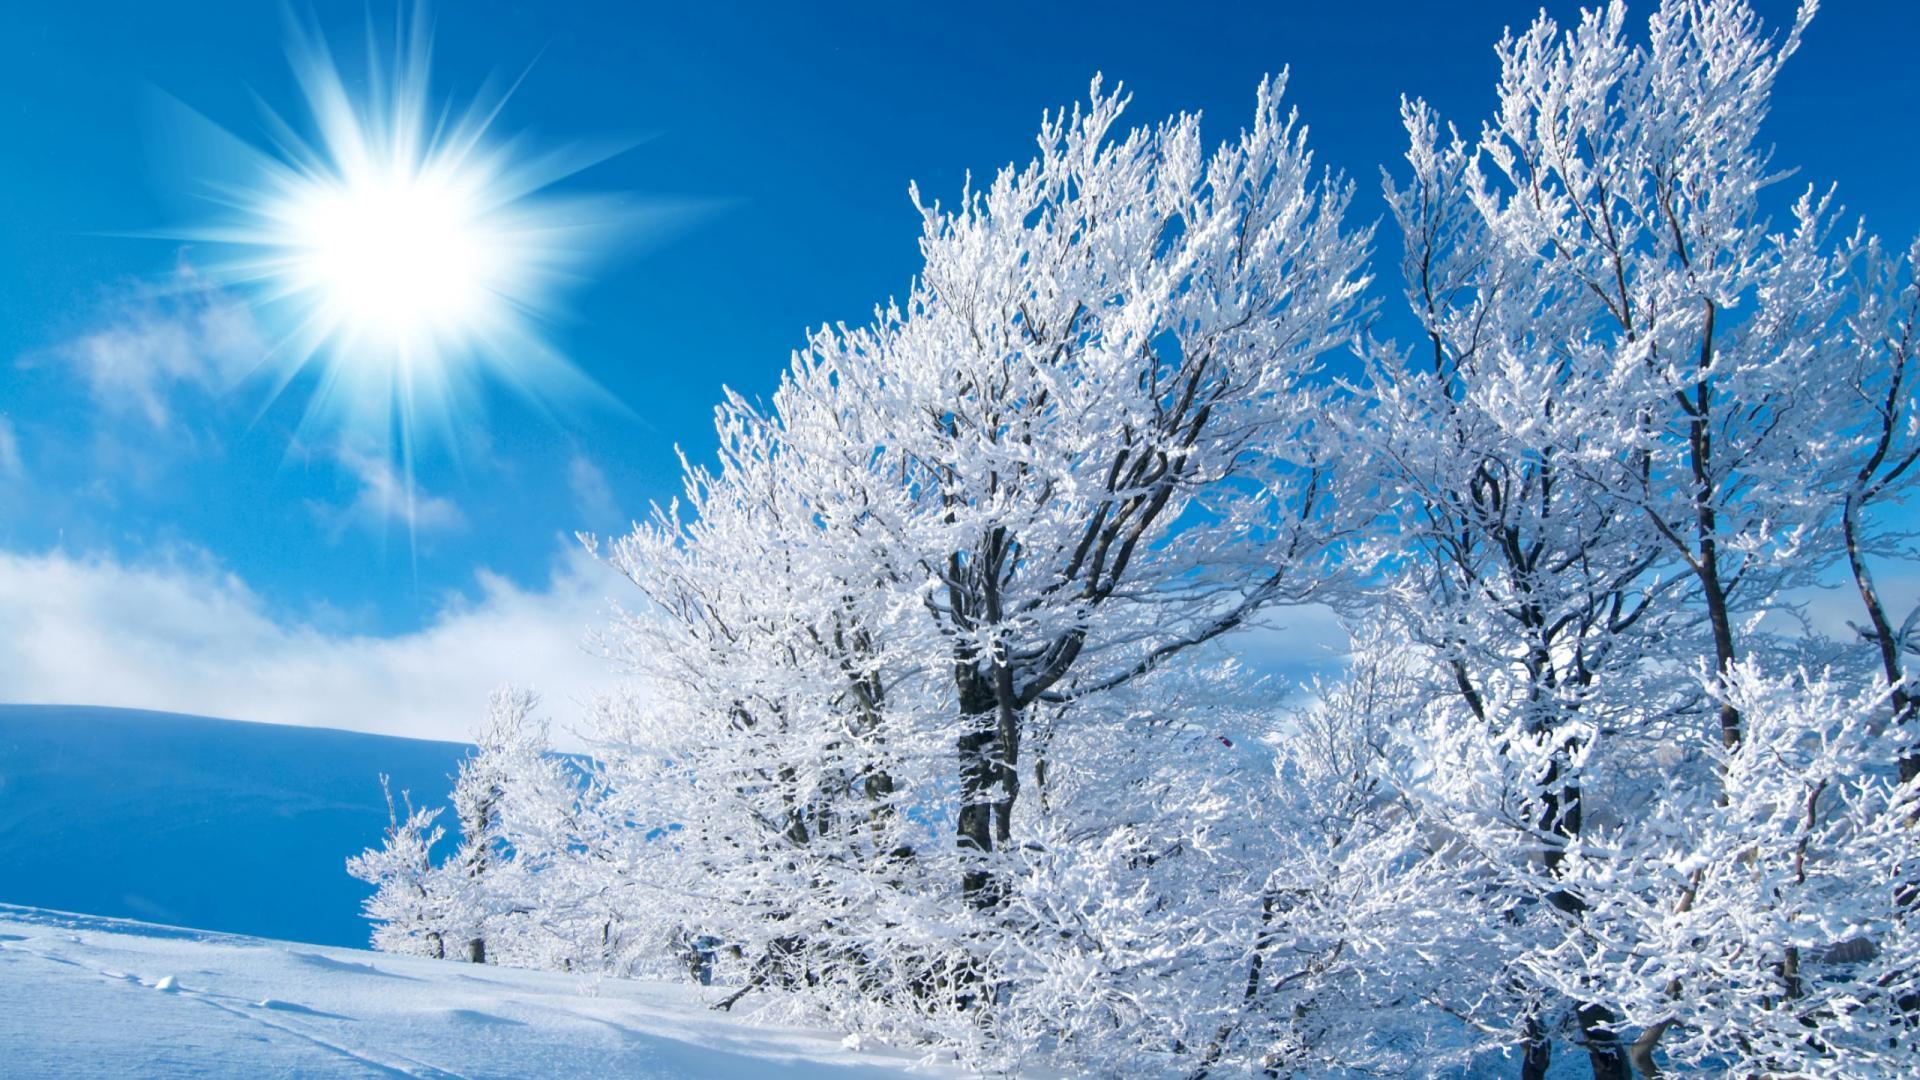 Free Winter Wallpapers For Desktop  Wallpaper Cave